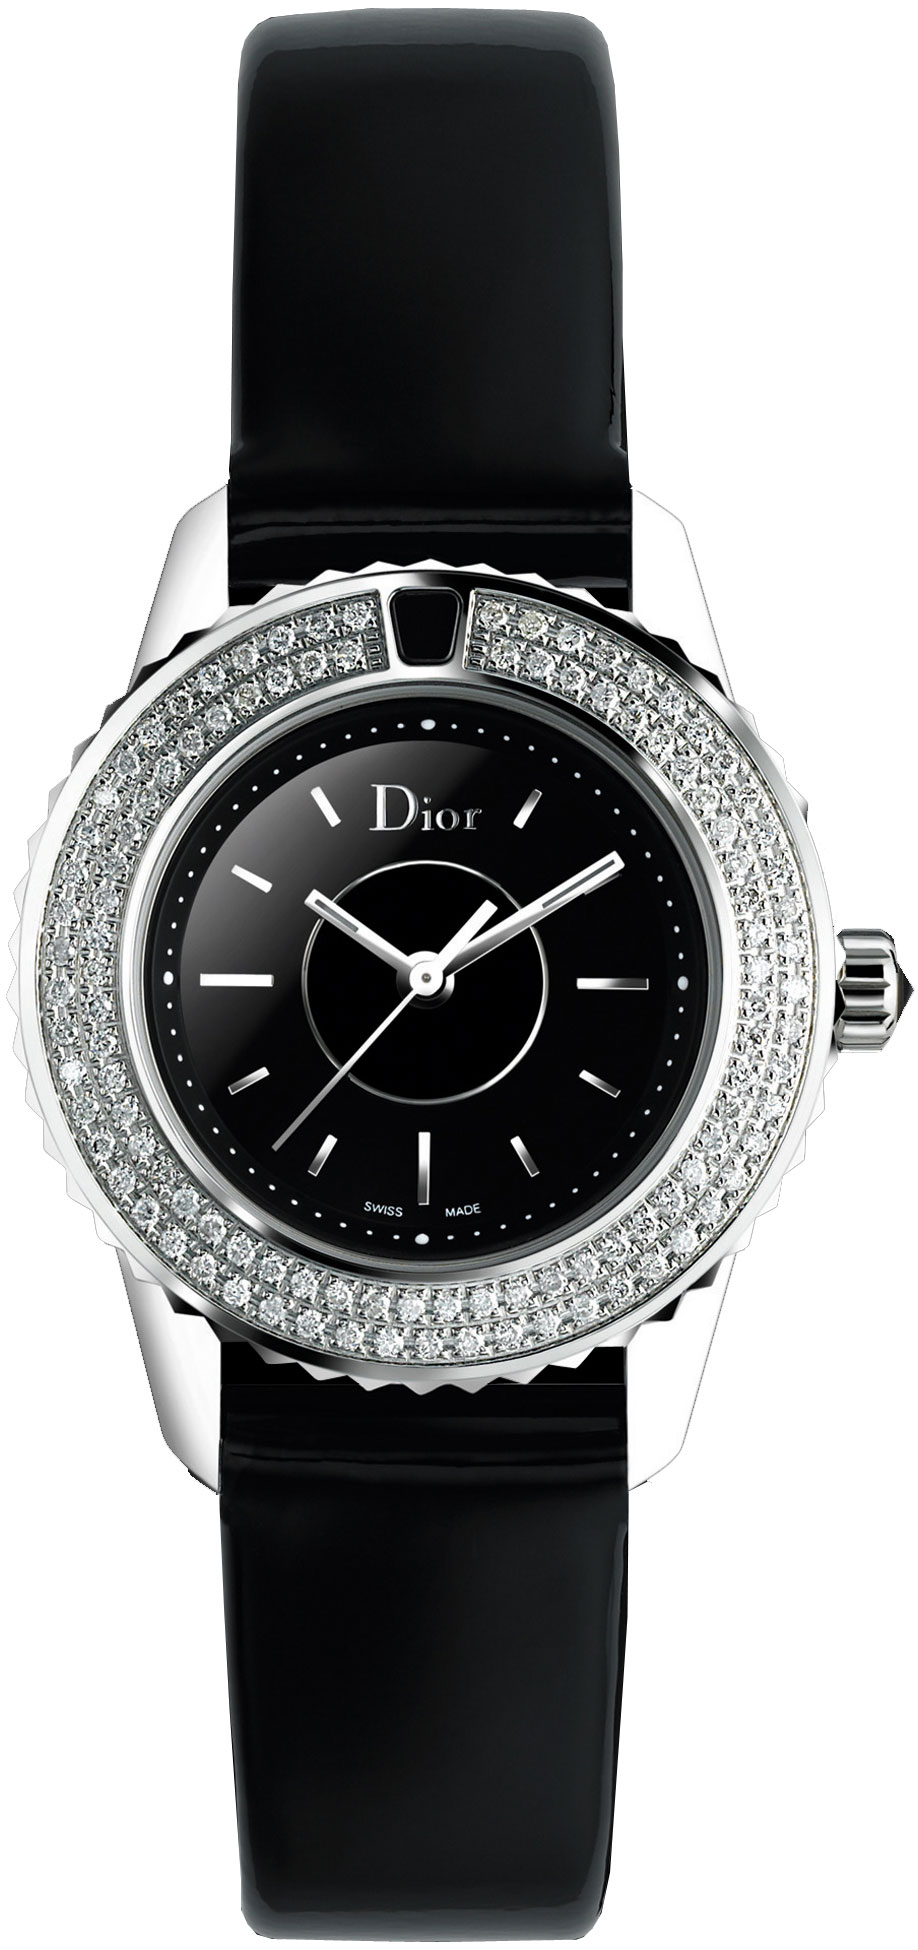 Christian dior christal ladies watch model cd112119a001 for Christian dior watches